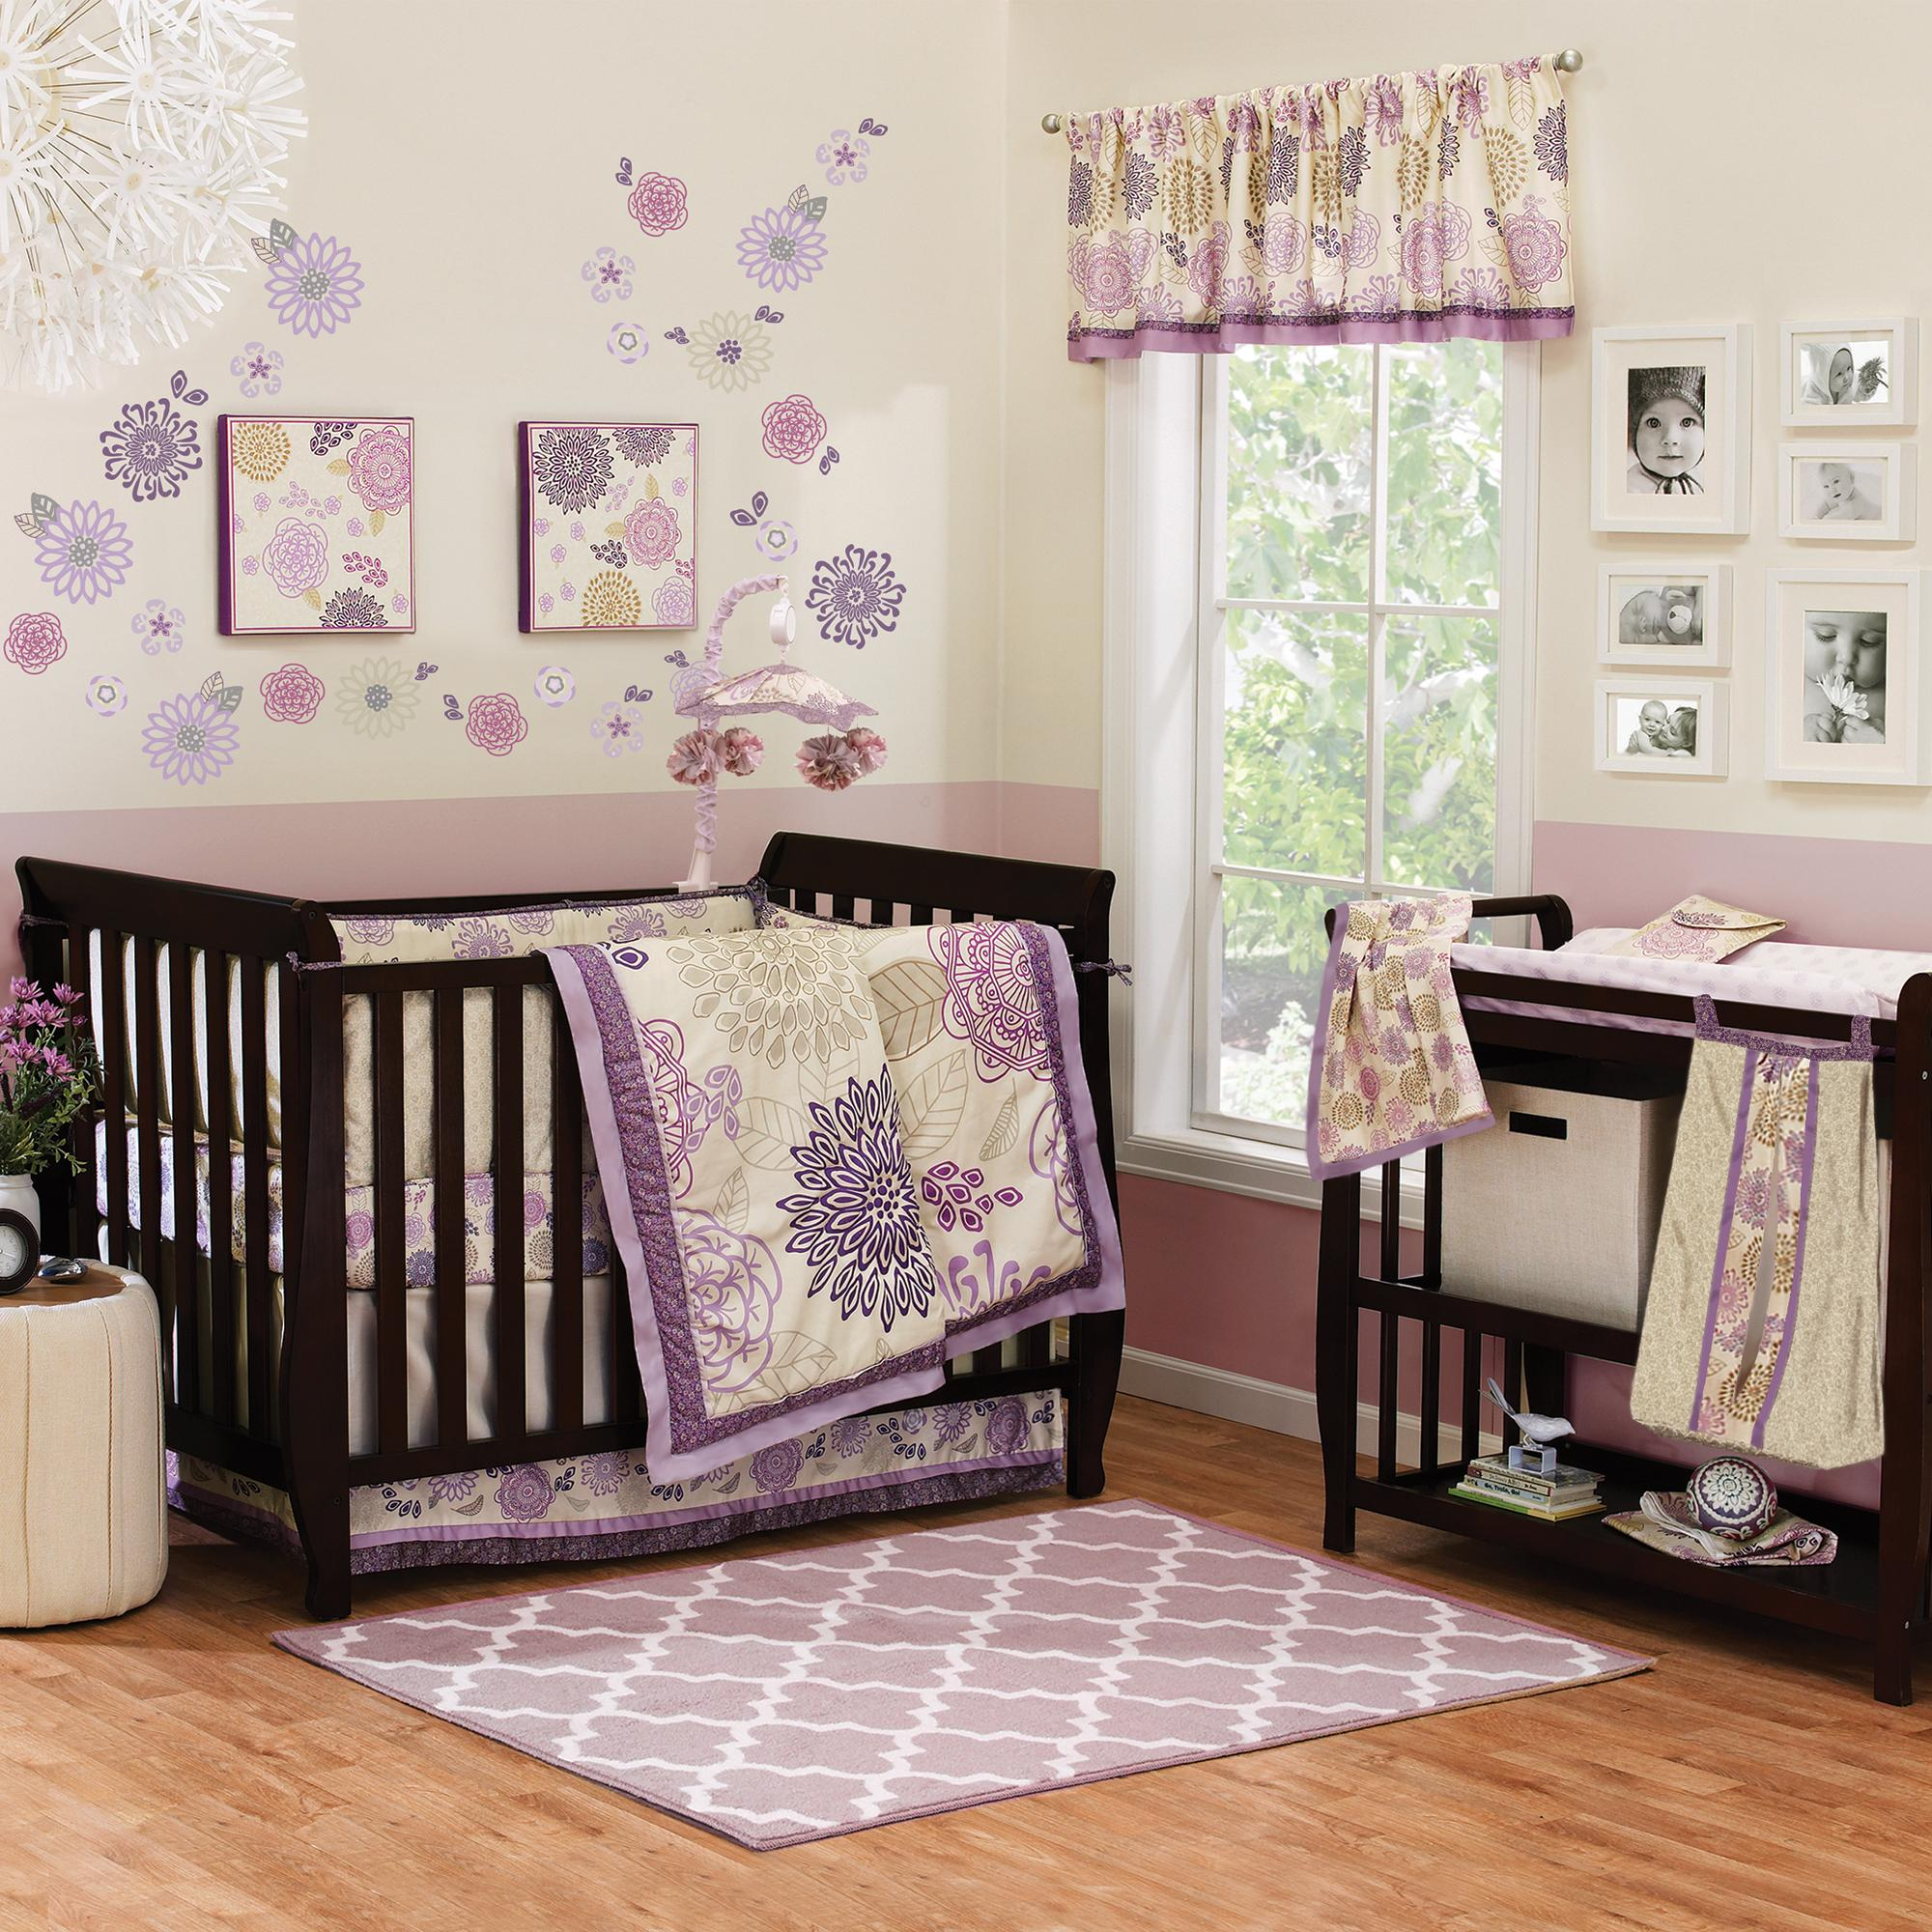 catcher collection set dream cribs blankets bedding elodie details global crib home